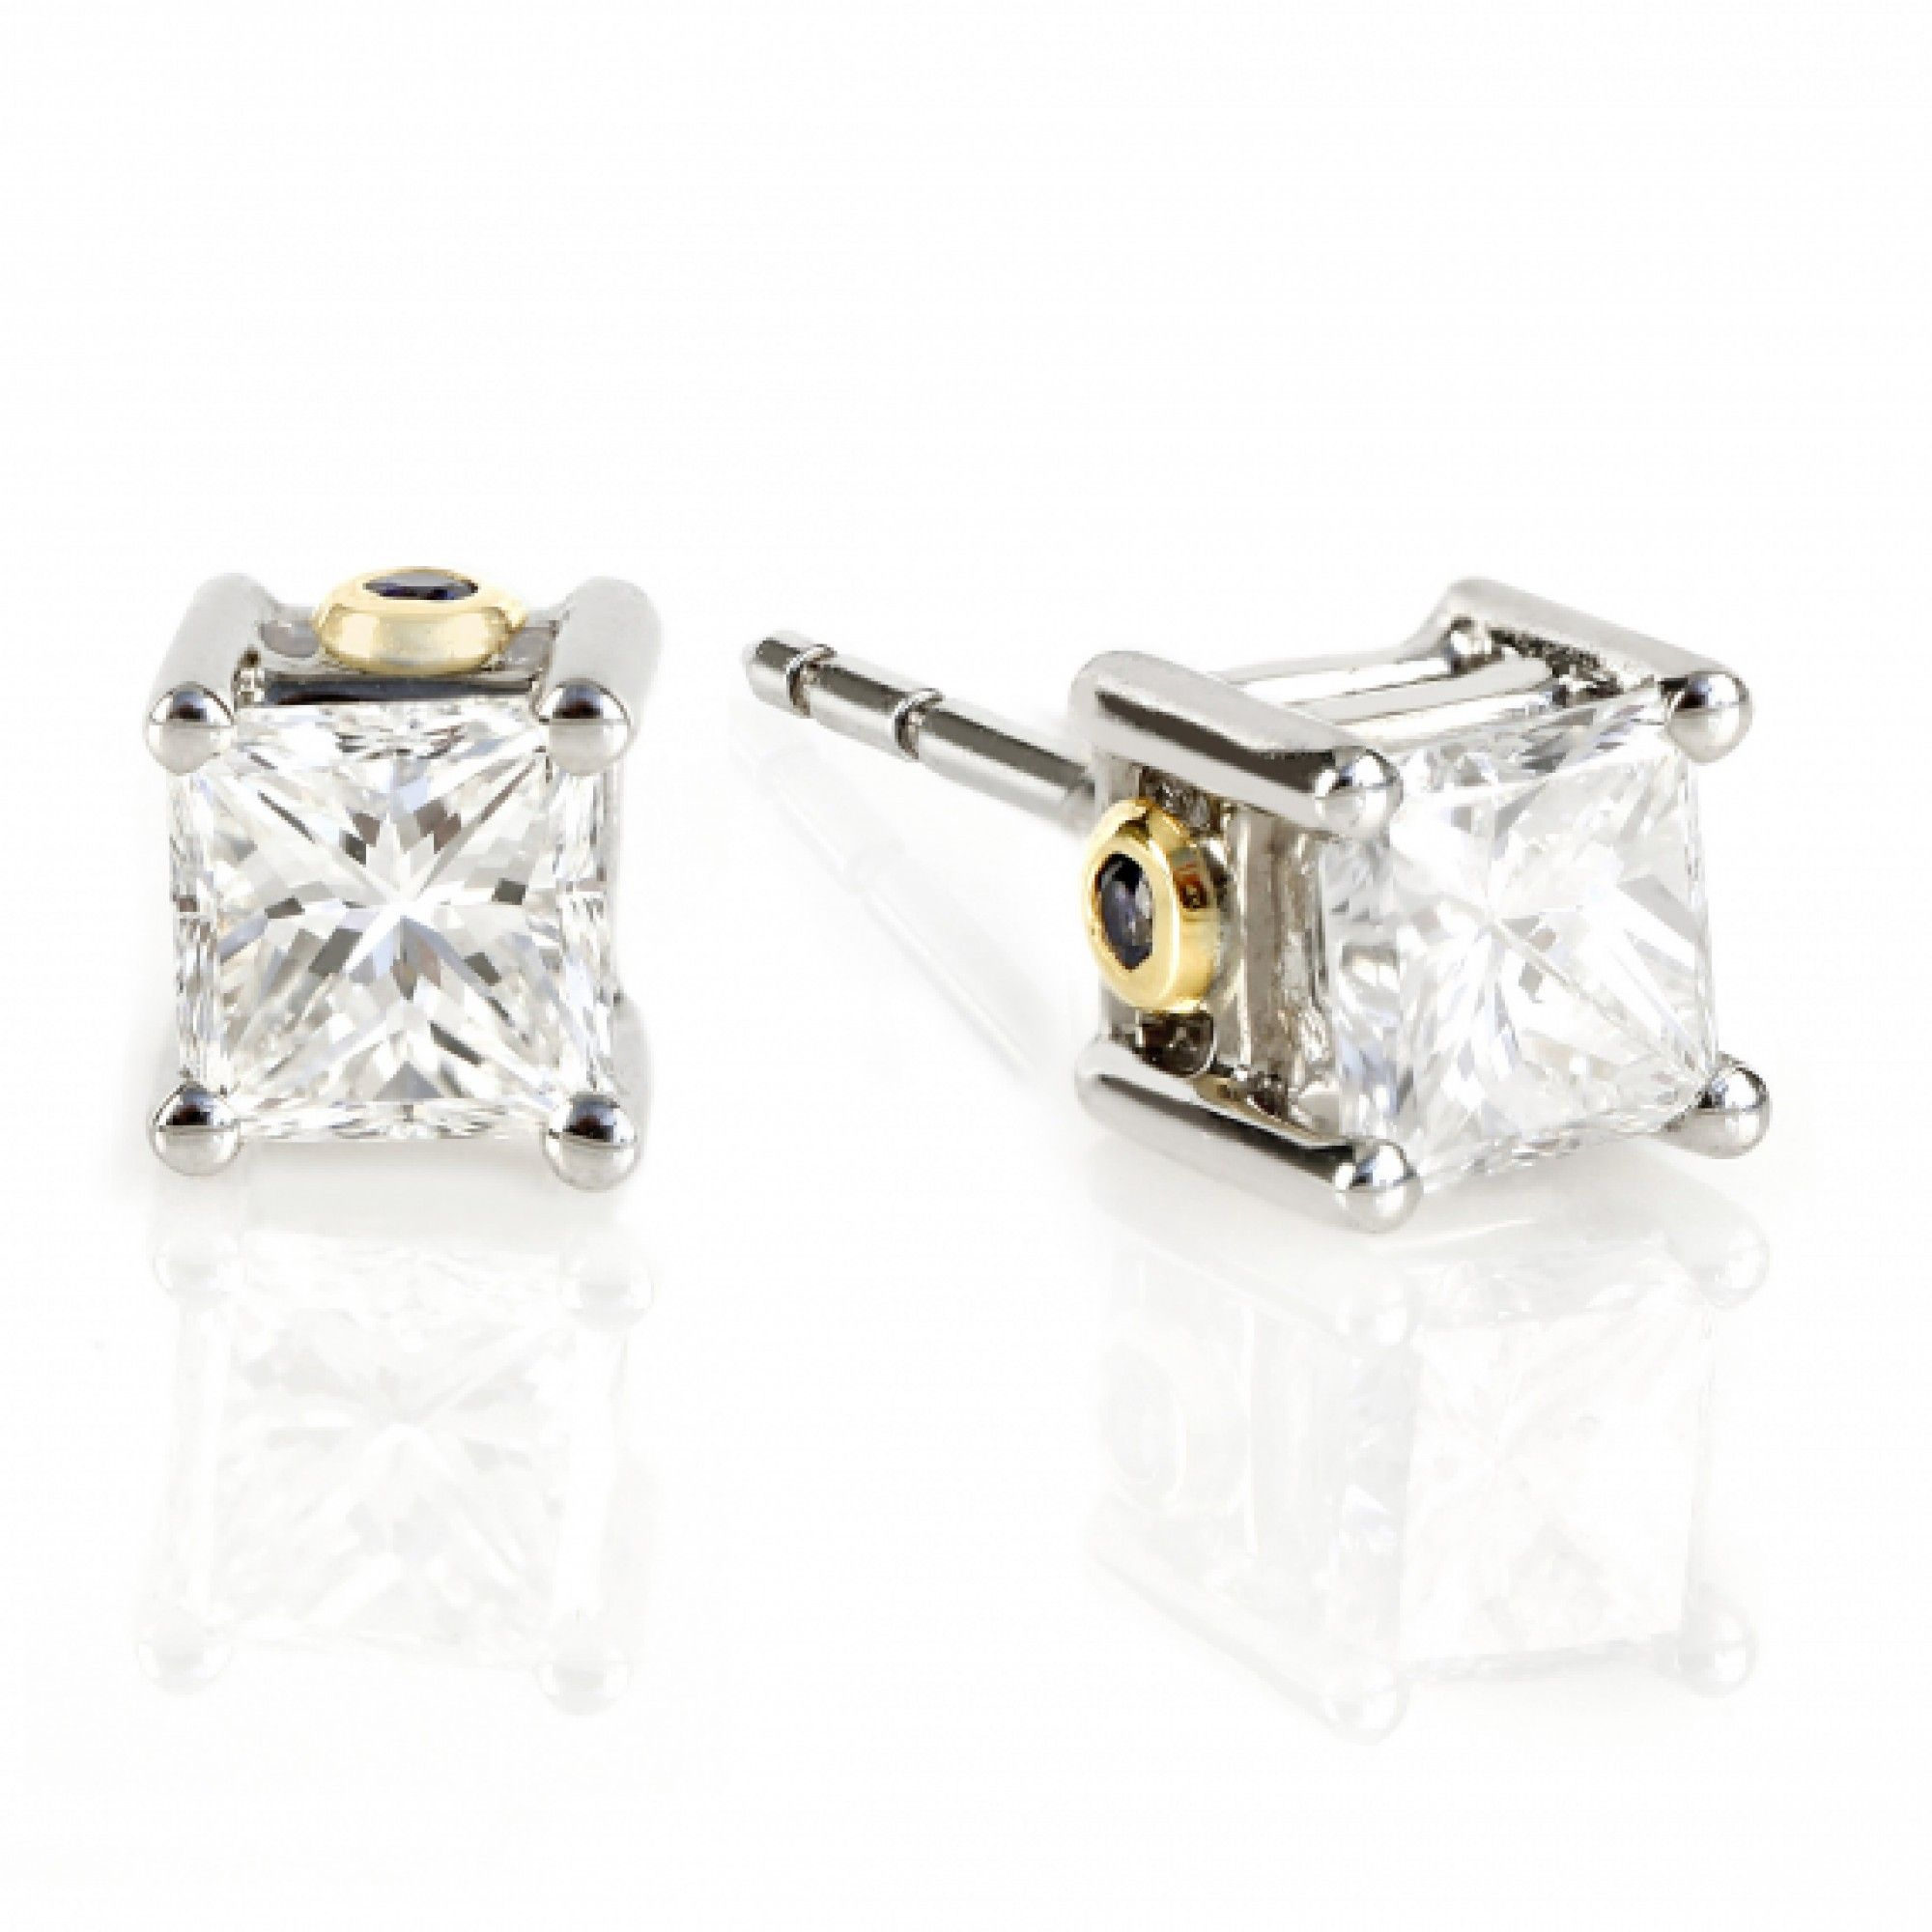 bygxkfe make earrings round h diamond in will womens stud every sing beauty called vs ctw solitaire gold white heart a